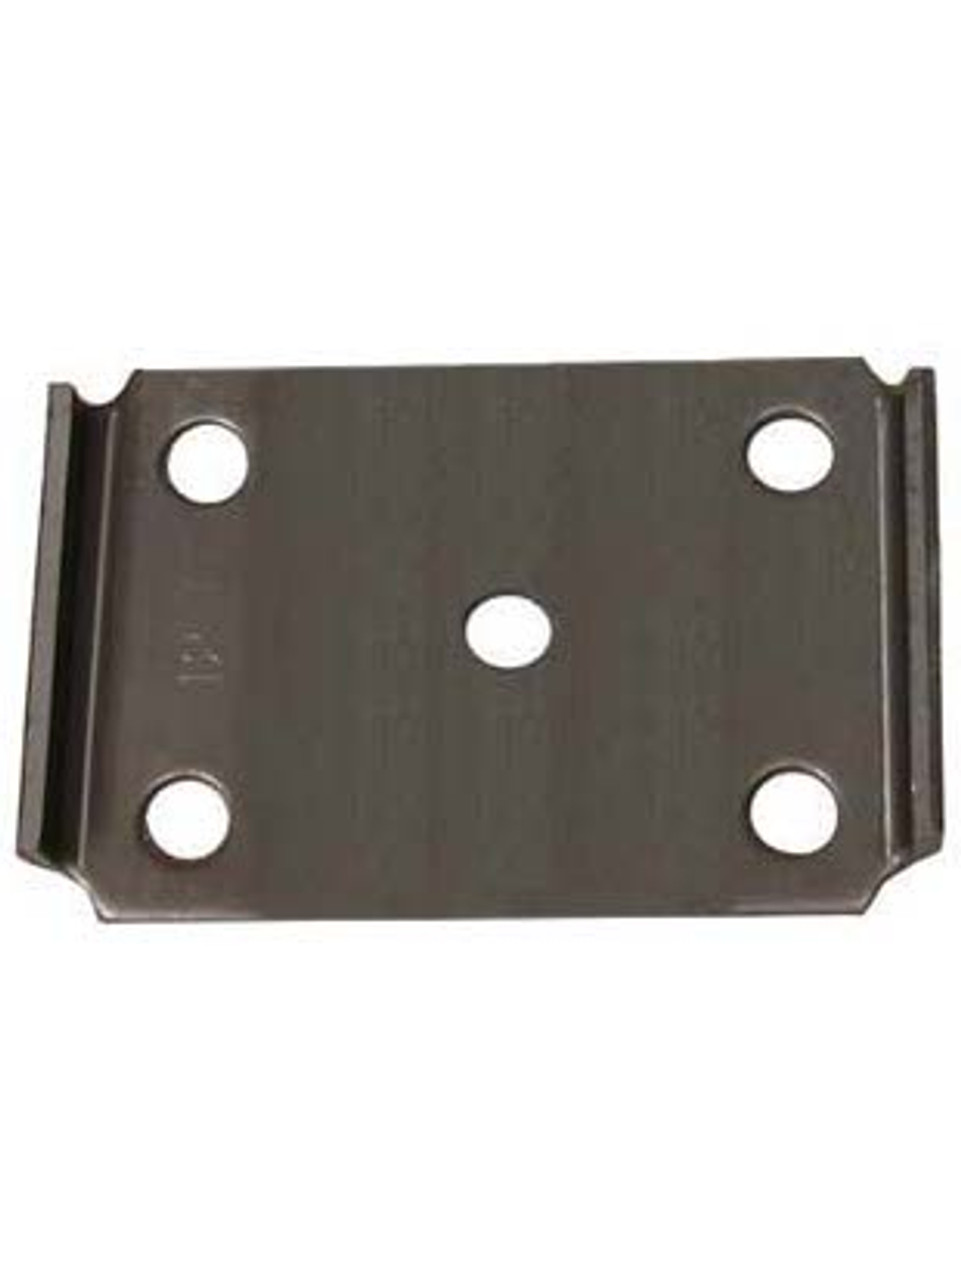 "AP22 --- Axle Plate for 2"" Wide Springs & 2"" Square Axles"